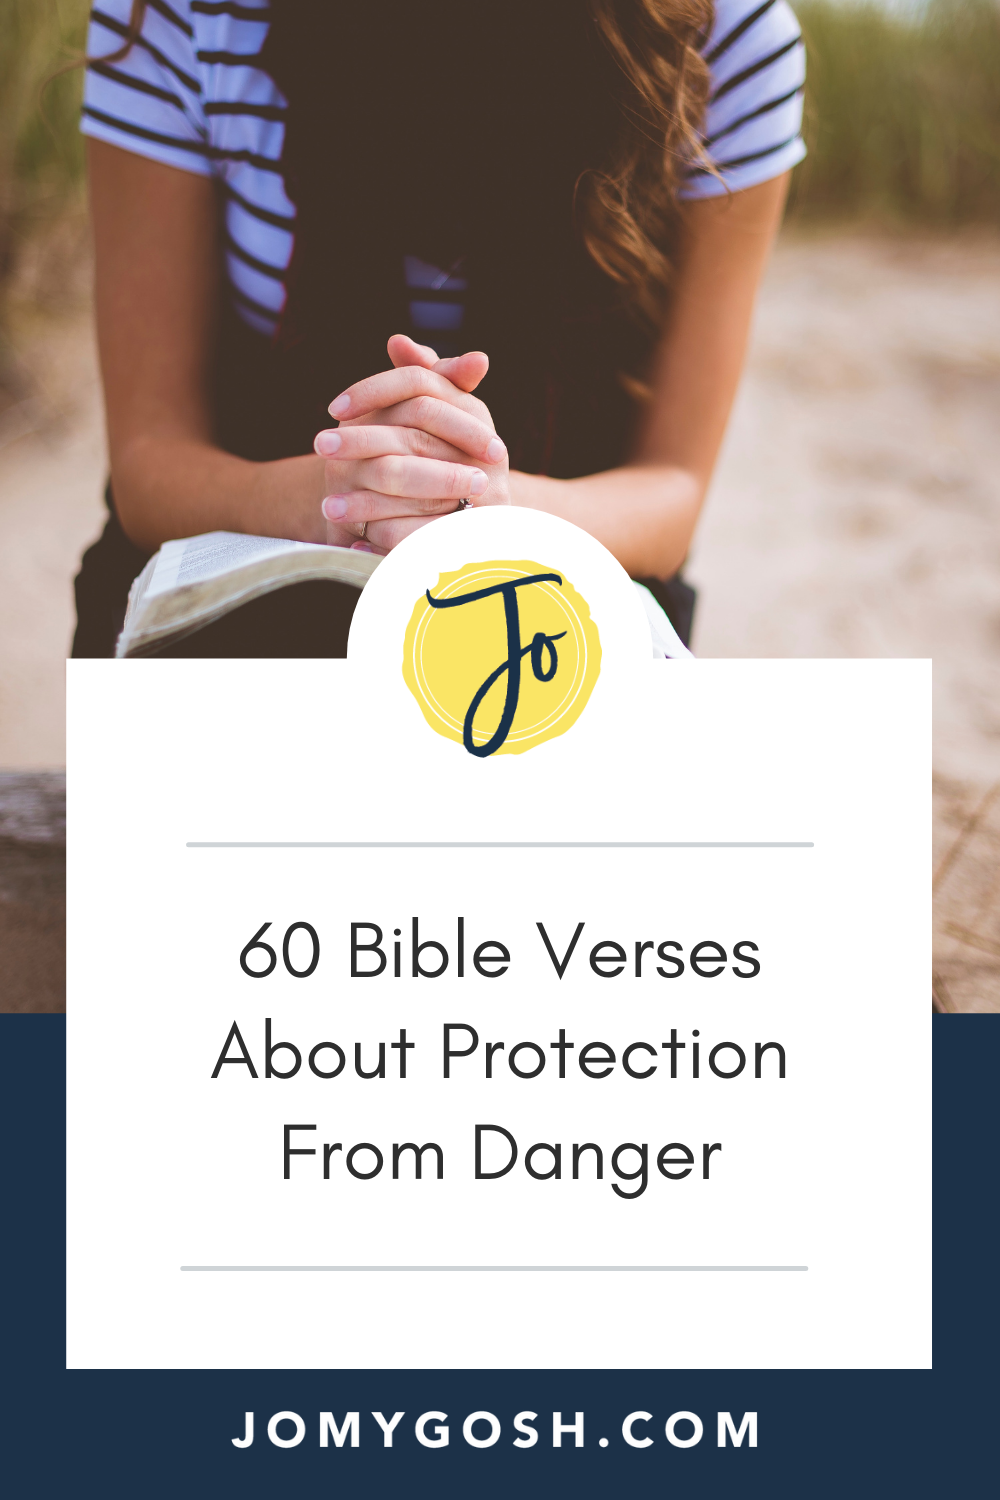 Read and pray these Bible verses about protecting yourself and loved ones from danger. #bible #bibleverses #prayer #praying